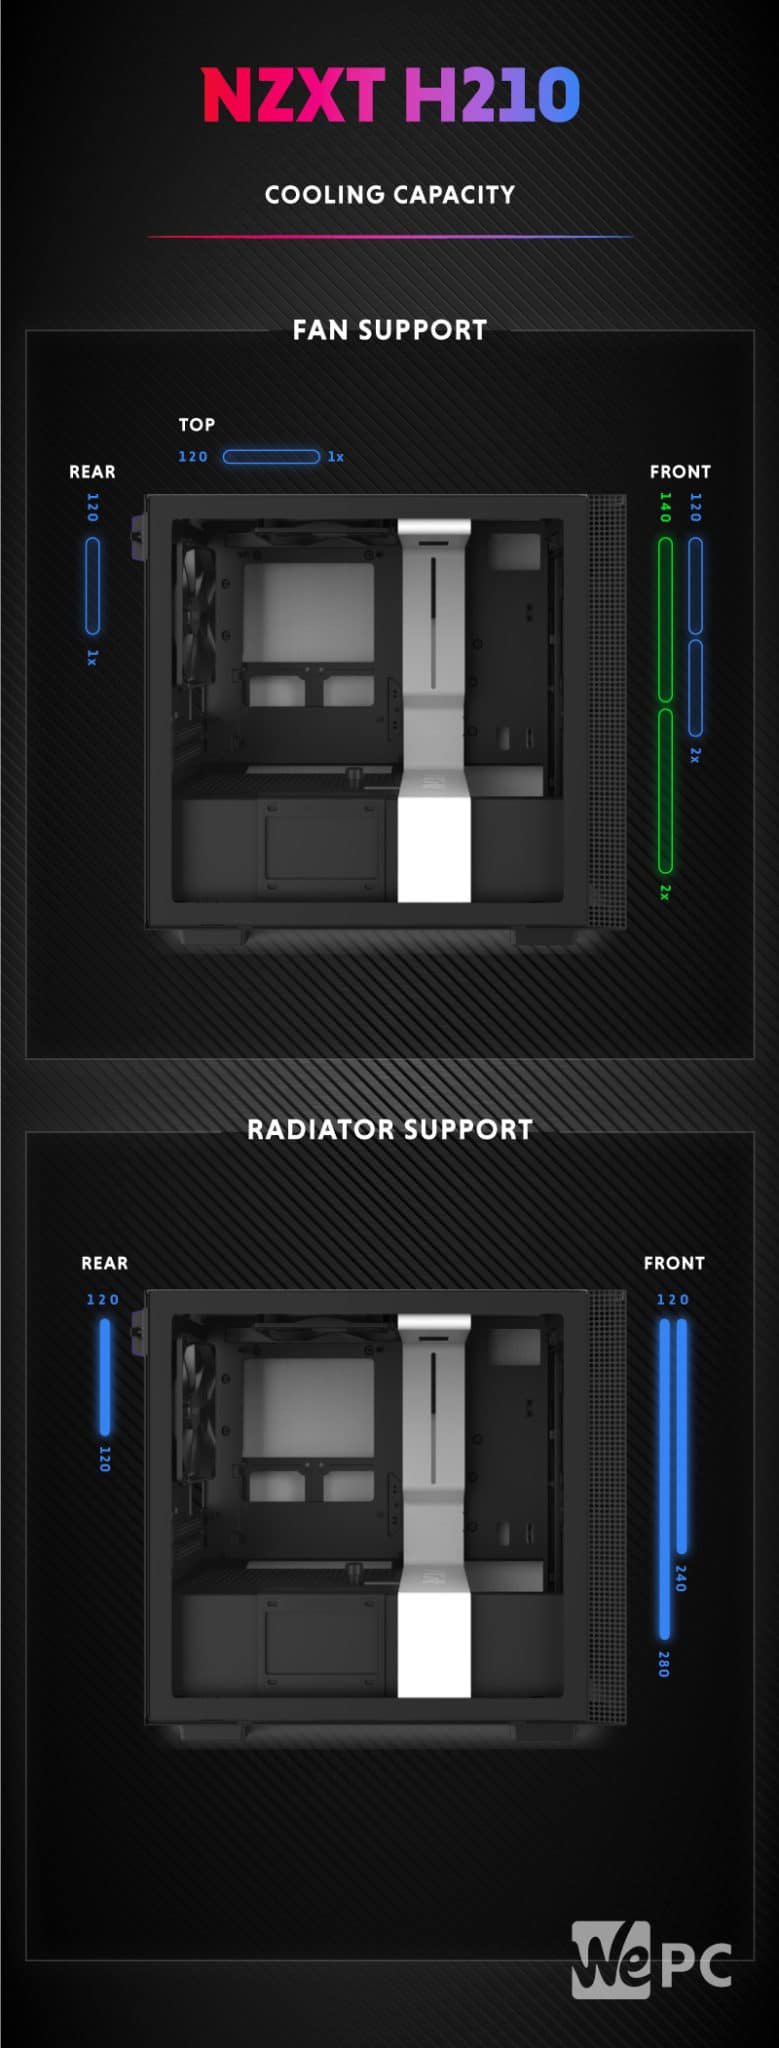 NZXT H210 Cooling Capacity